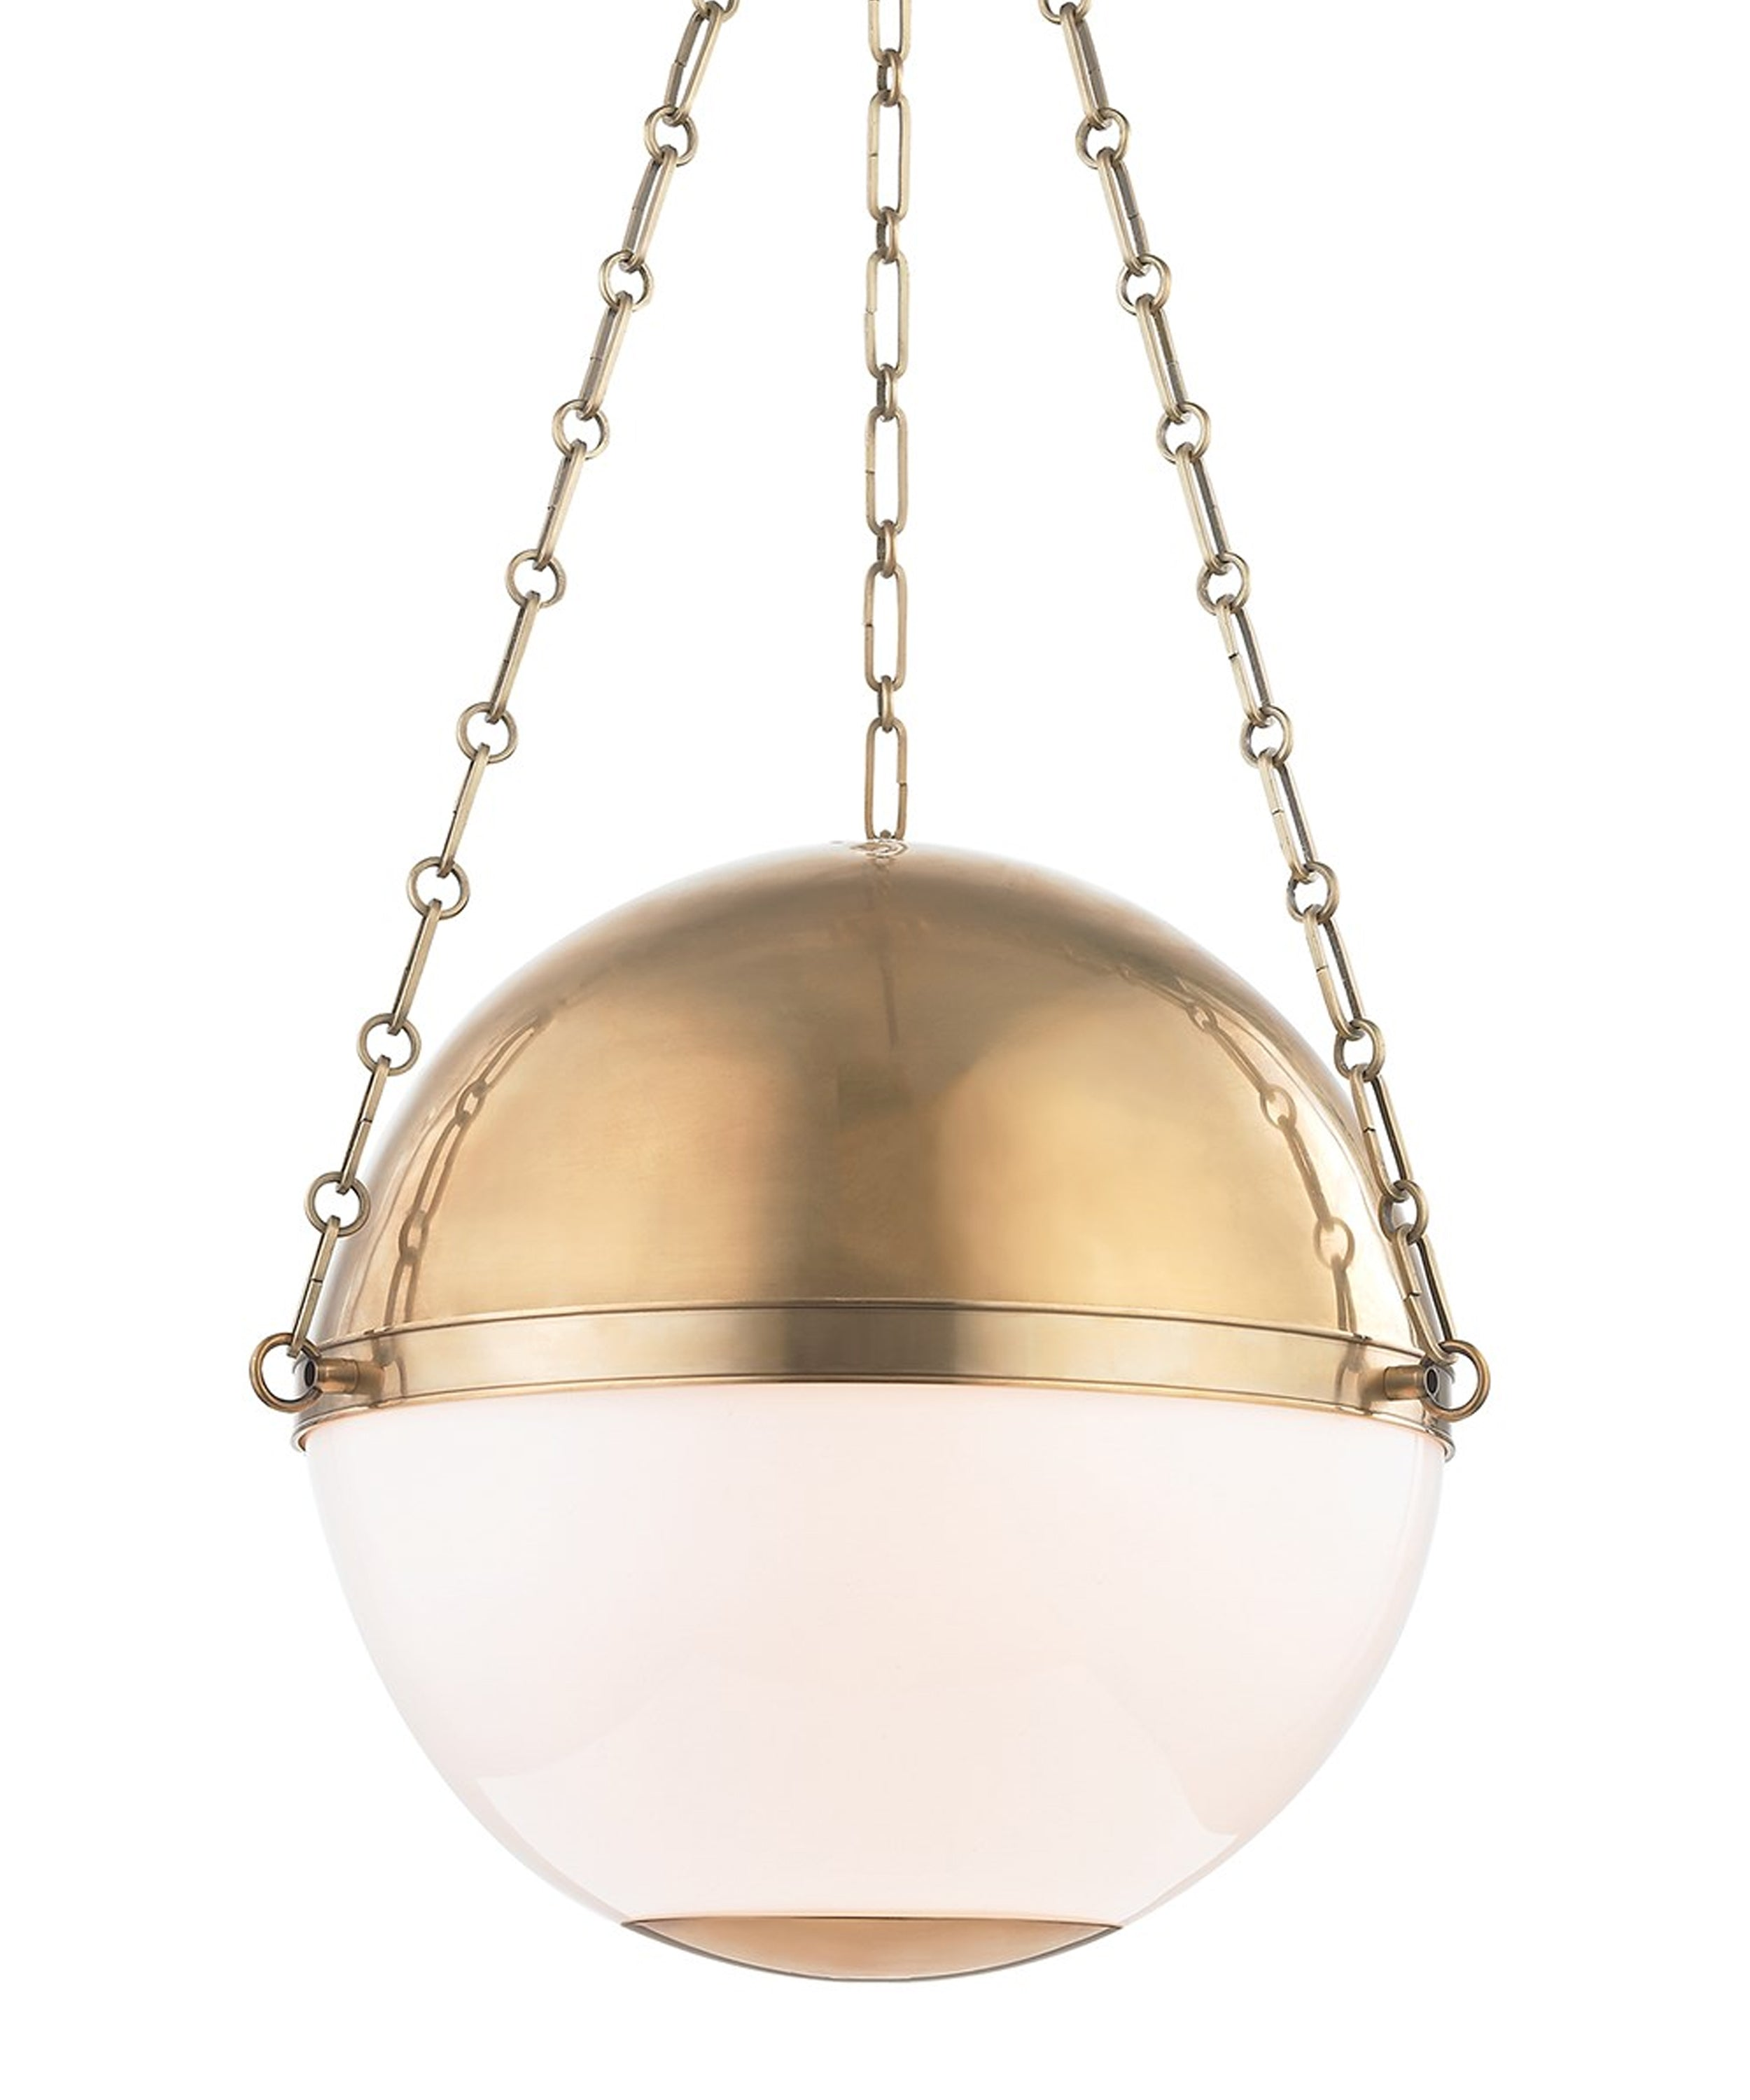 Large Sphere No. 2 Pendant, Aged Brass